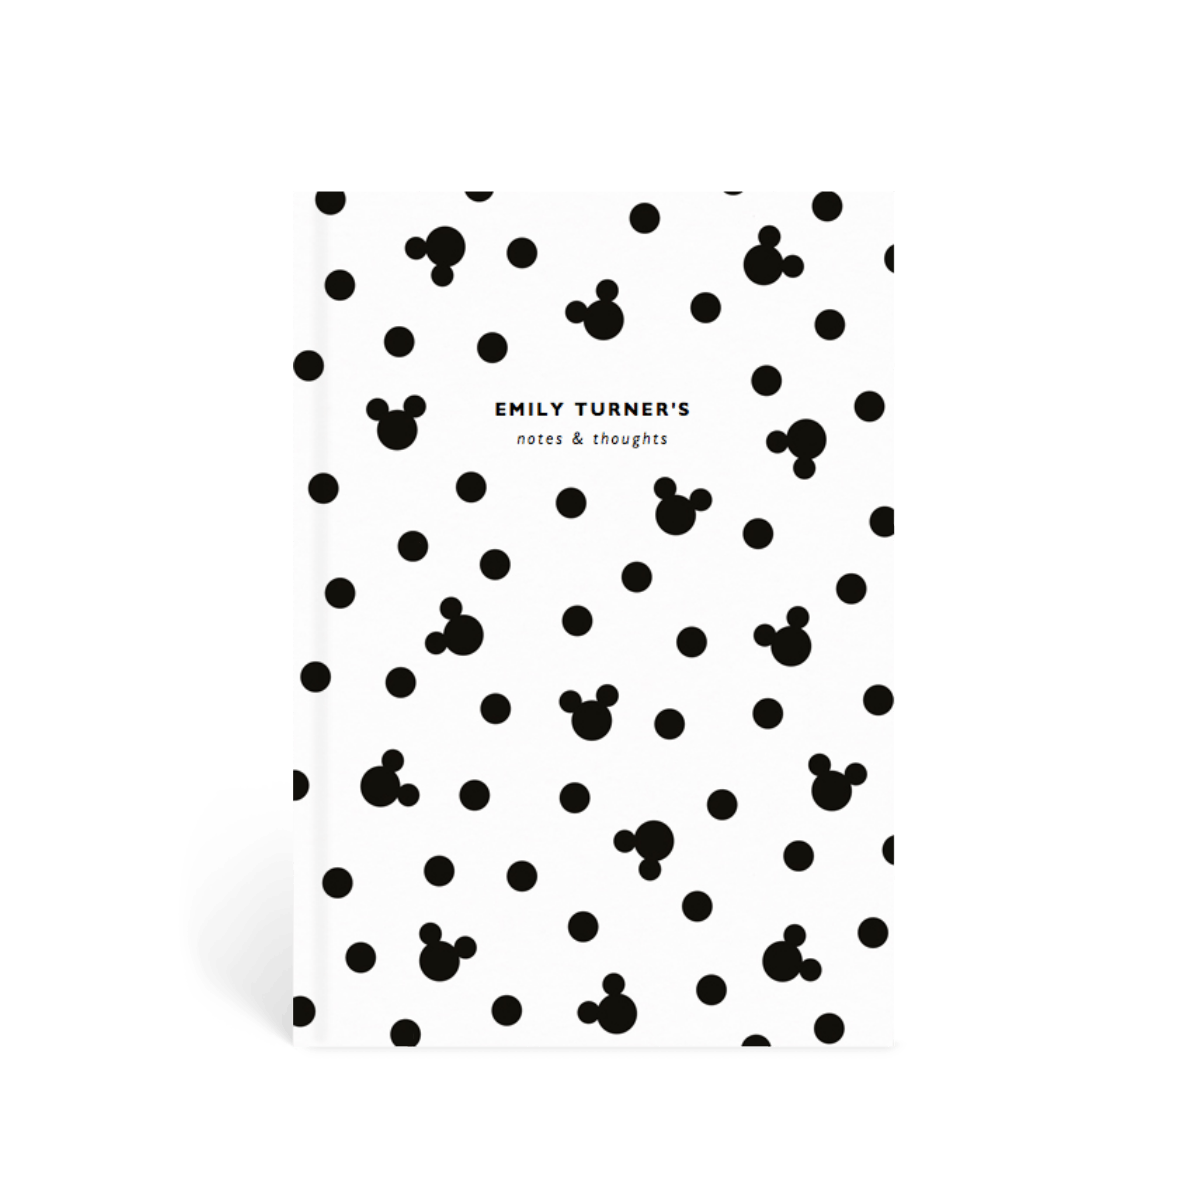 Https%3a%2f%2fwww.papier.com%2fproduct image%2f51340%2f25%2fpolka dot mickey mouse 12573 front 1540477873.png?ixlib=rb 1.1